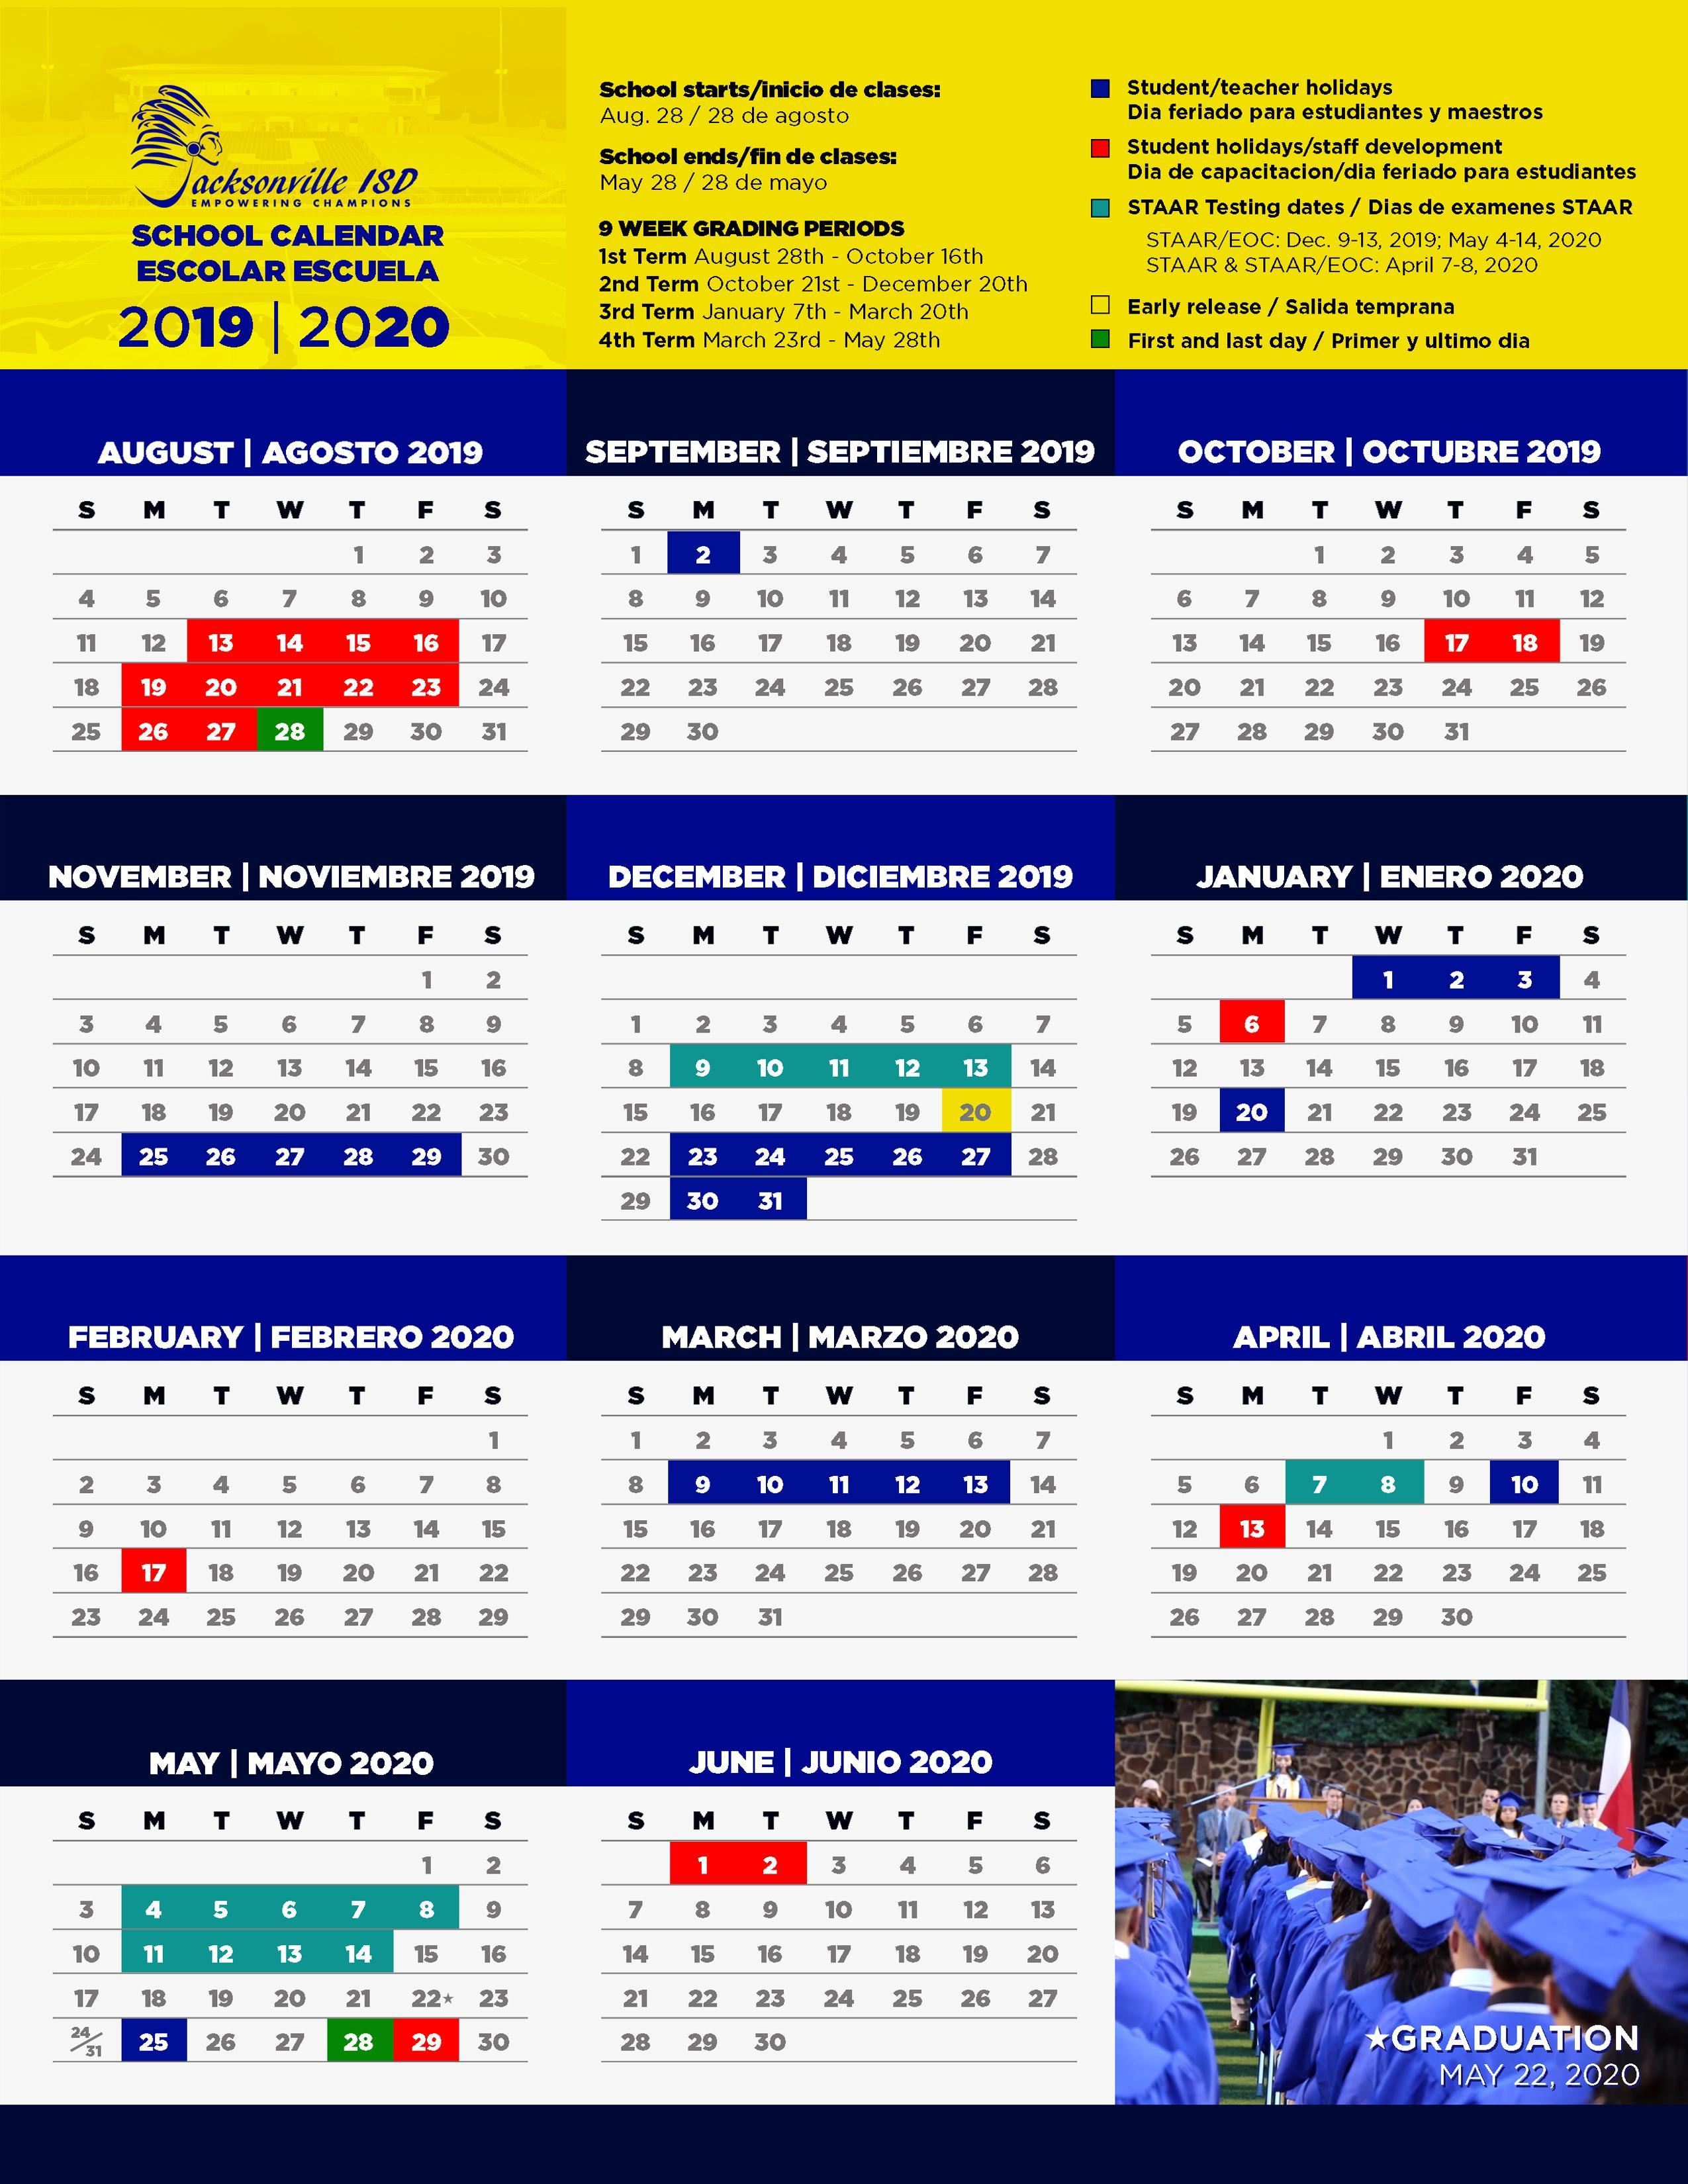 picture of year long school calendar